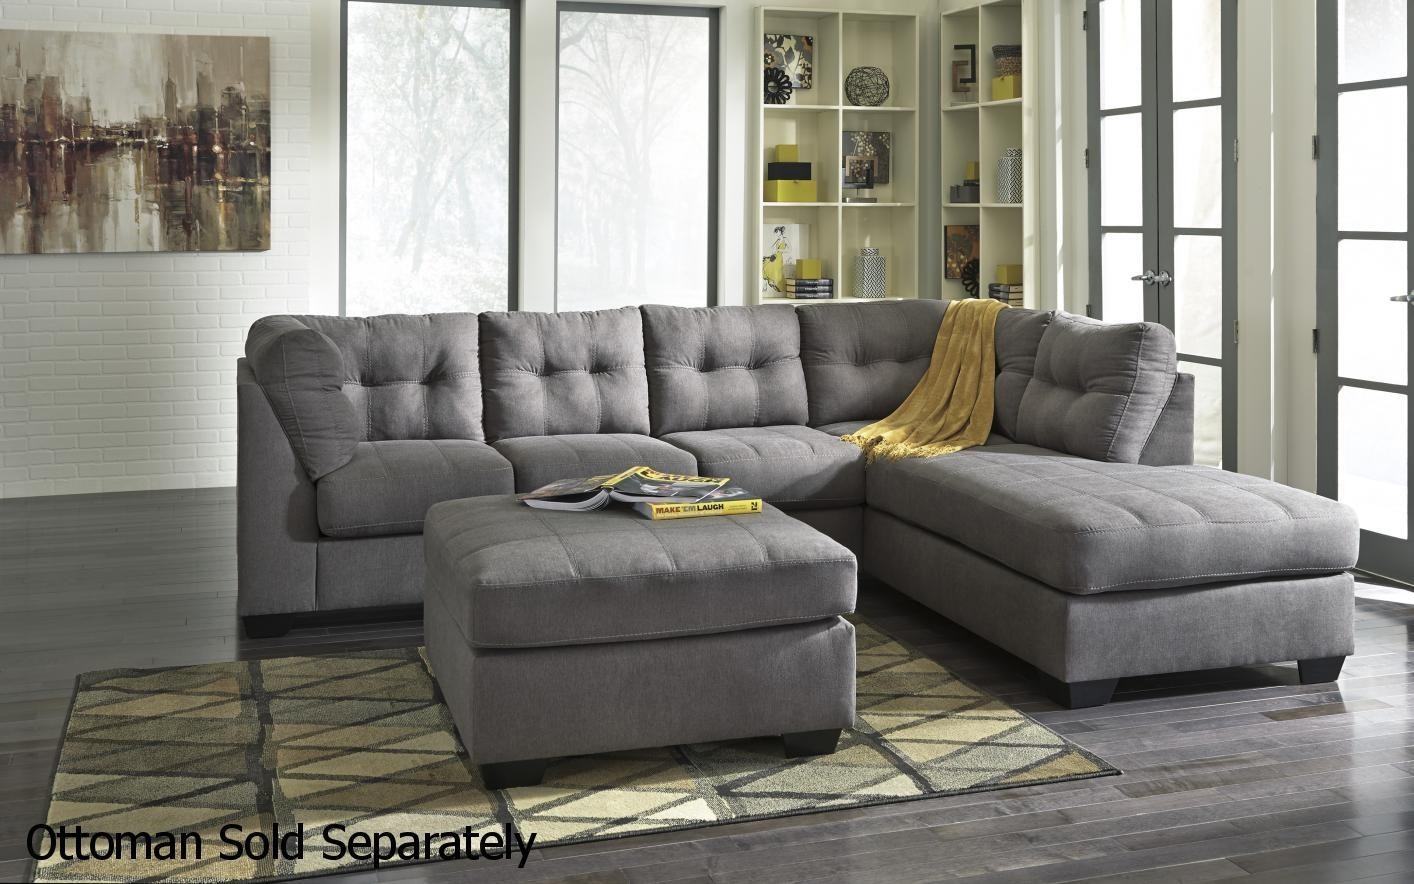 Sofas Center : Ashleyectionalofaofas With Chaise Loungeashley With Ashley Furniture Grenada Sectional (View 6 of 15)